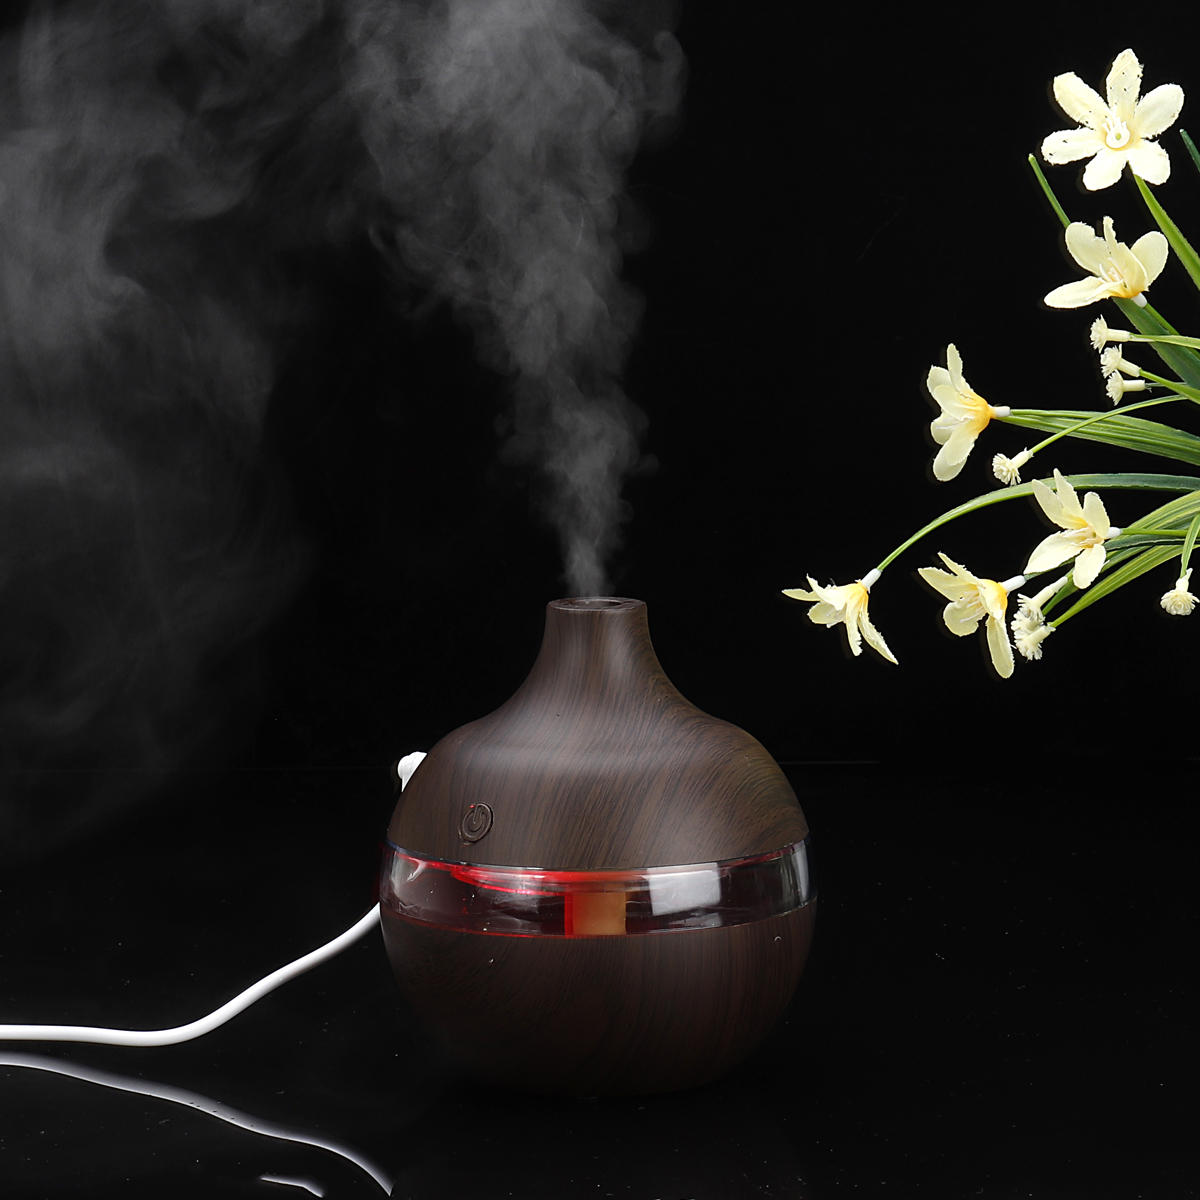 300ml 7 Color Night Lights Essential Oil Diffuser Aromatherapy Cool Mist Humidifier for Office Home Study Yoga Spa Baby USB Charging - 12